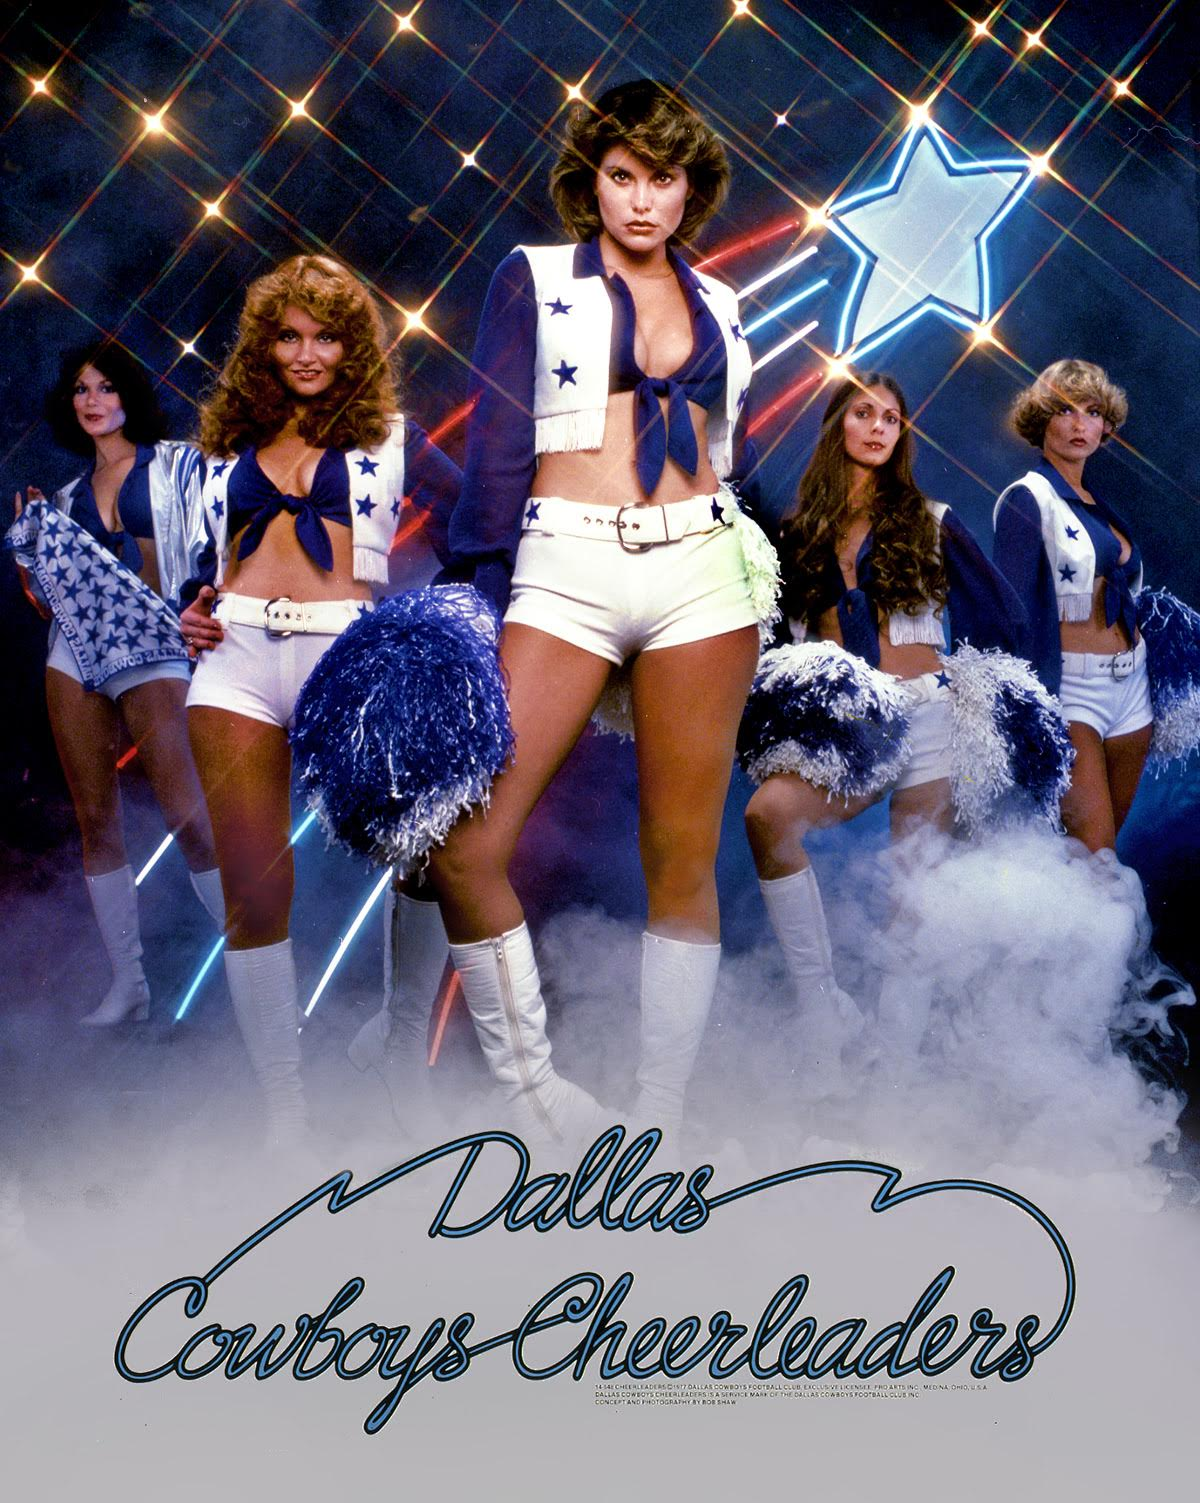 Topless dallas cowboy cheerleaders, japanee adlut tits dvd